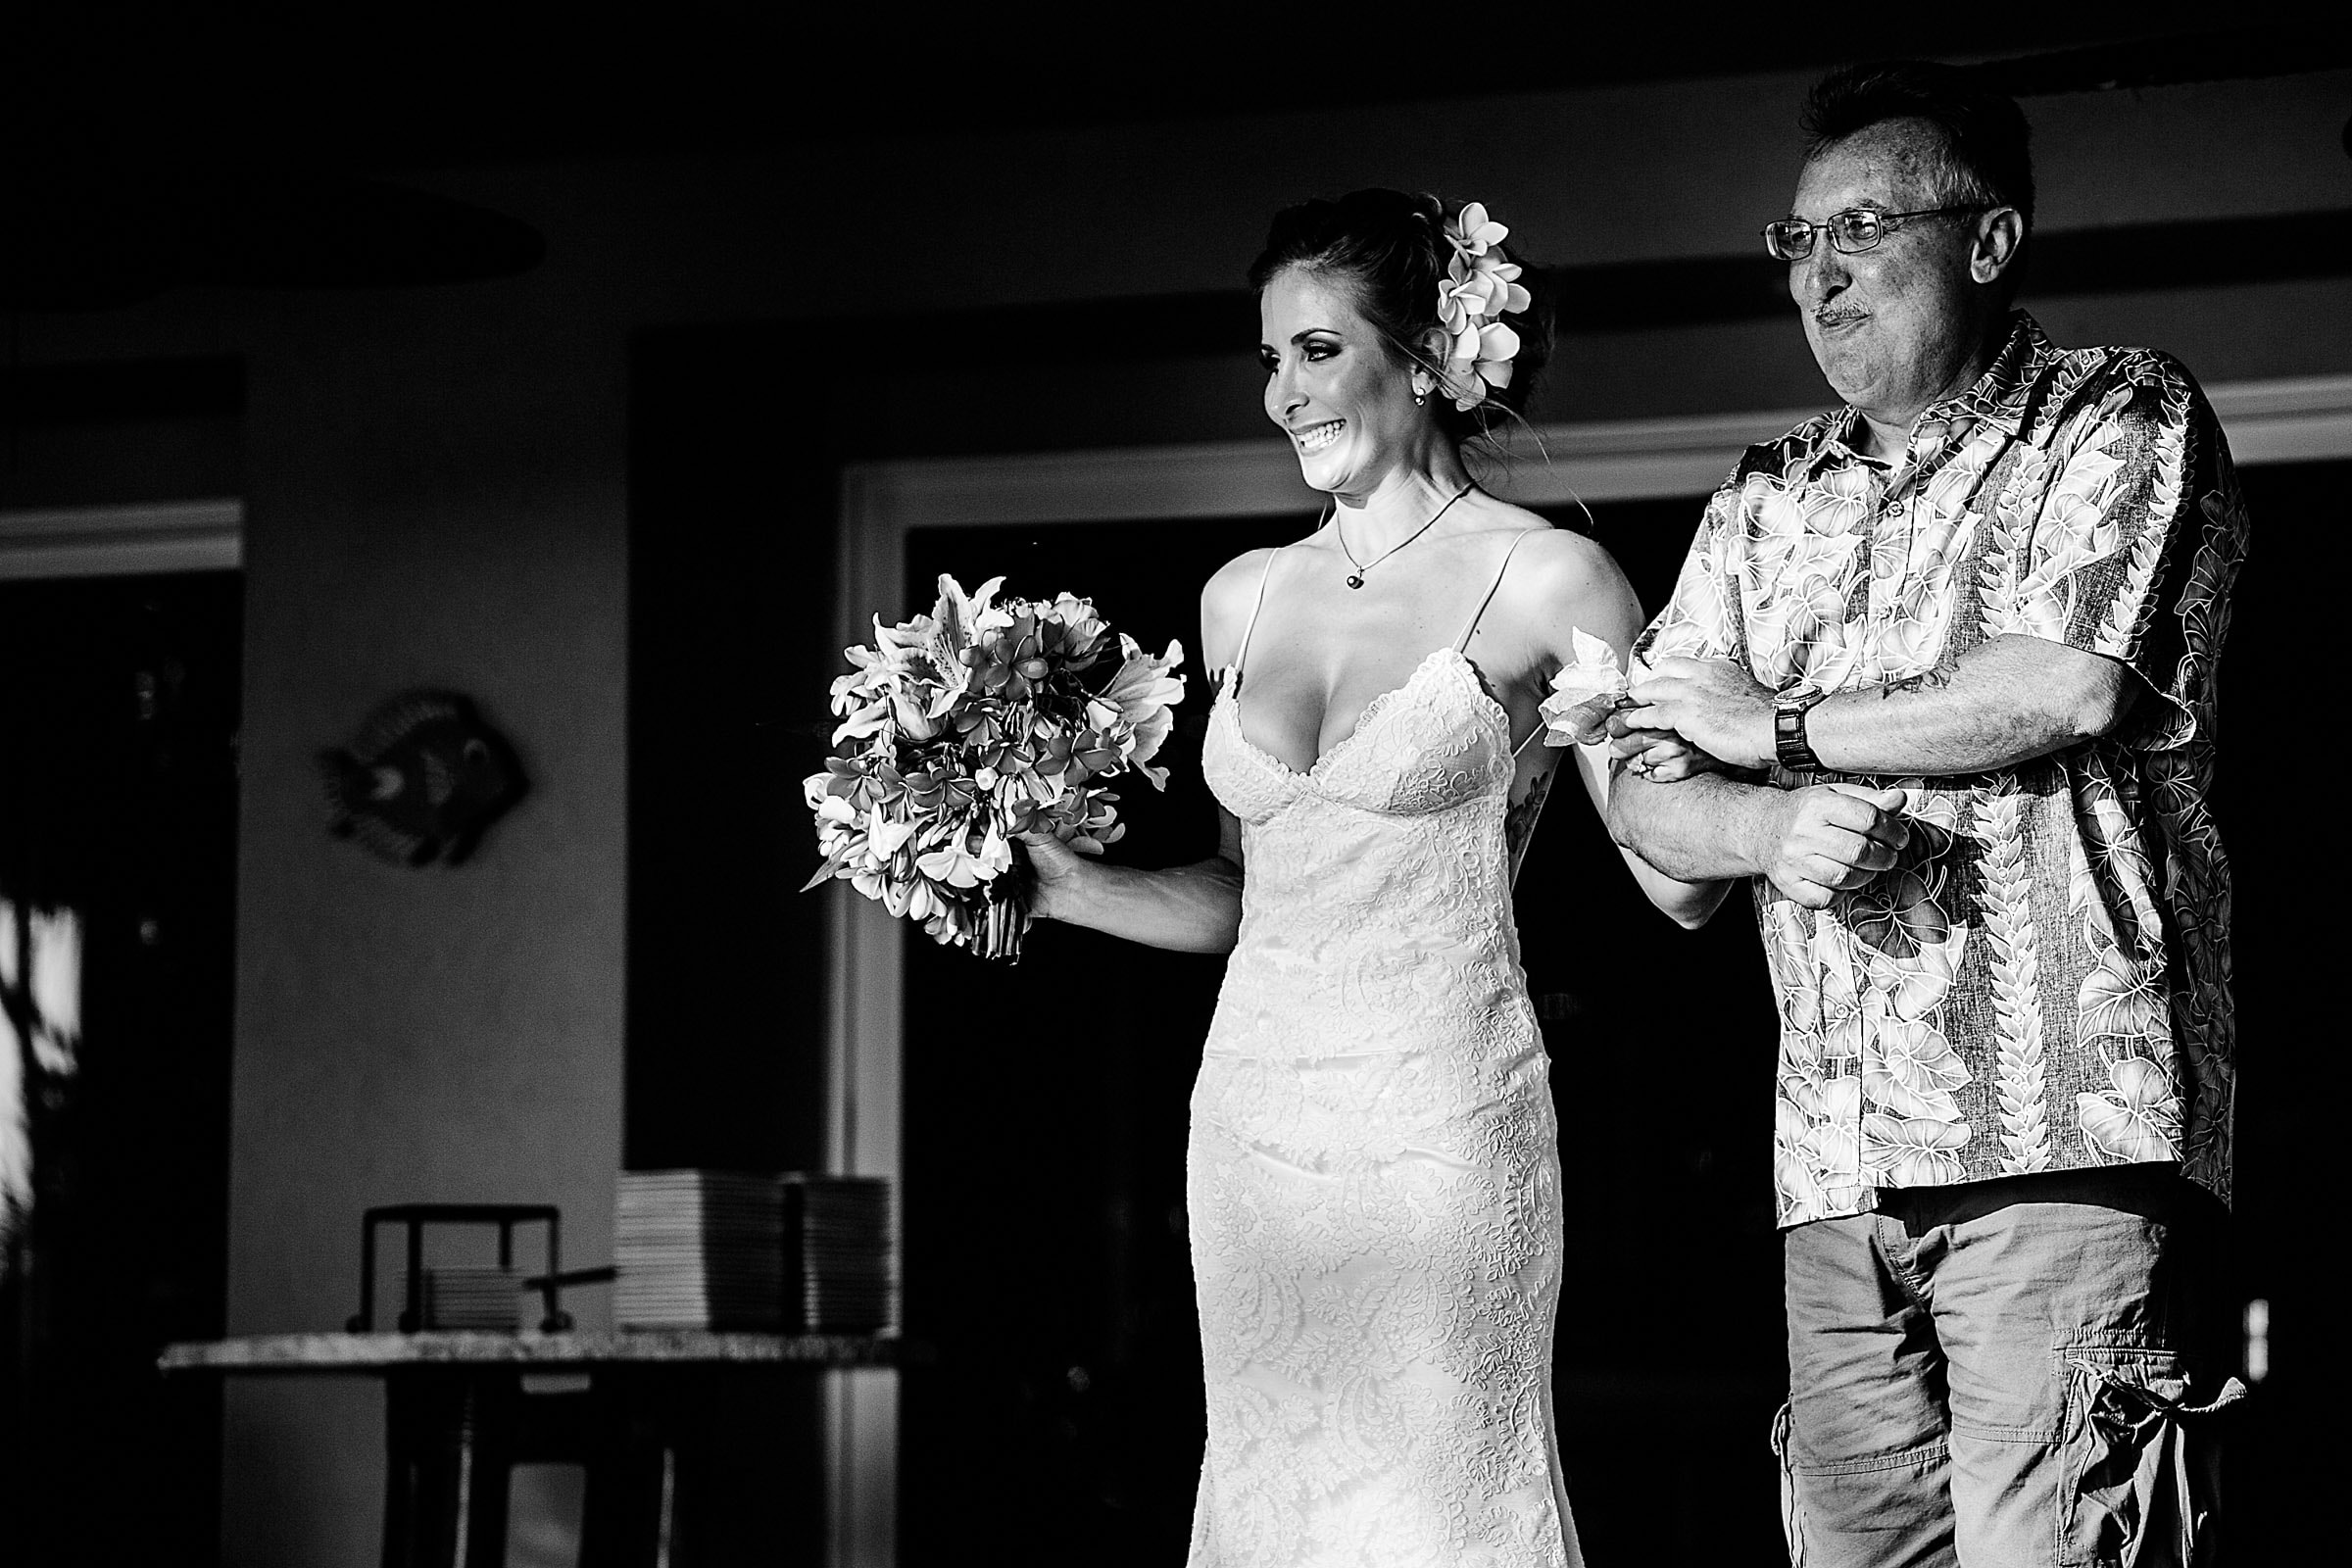 Bride walking with her father heading into her Kailua Kona Wedding at the Kona Beach Bungalows on the Big Island of Hawaii